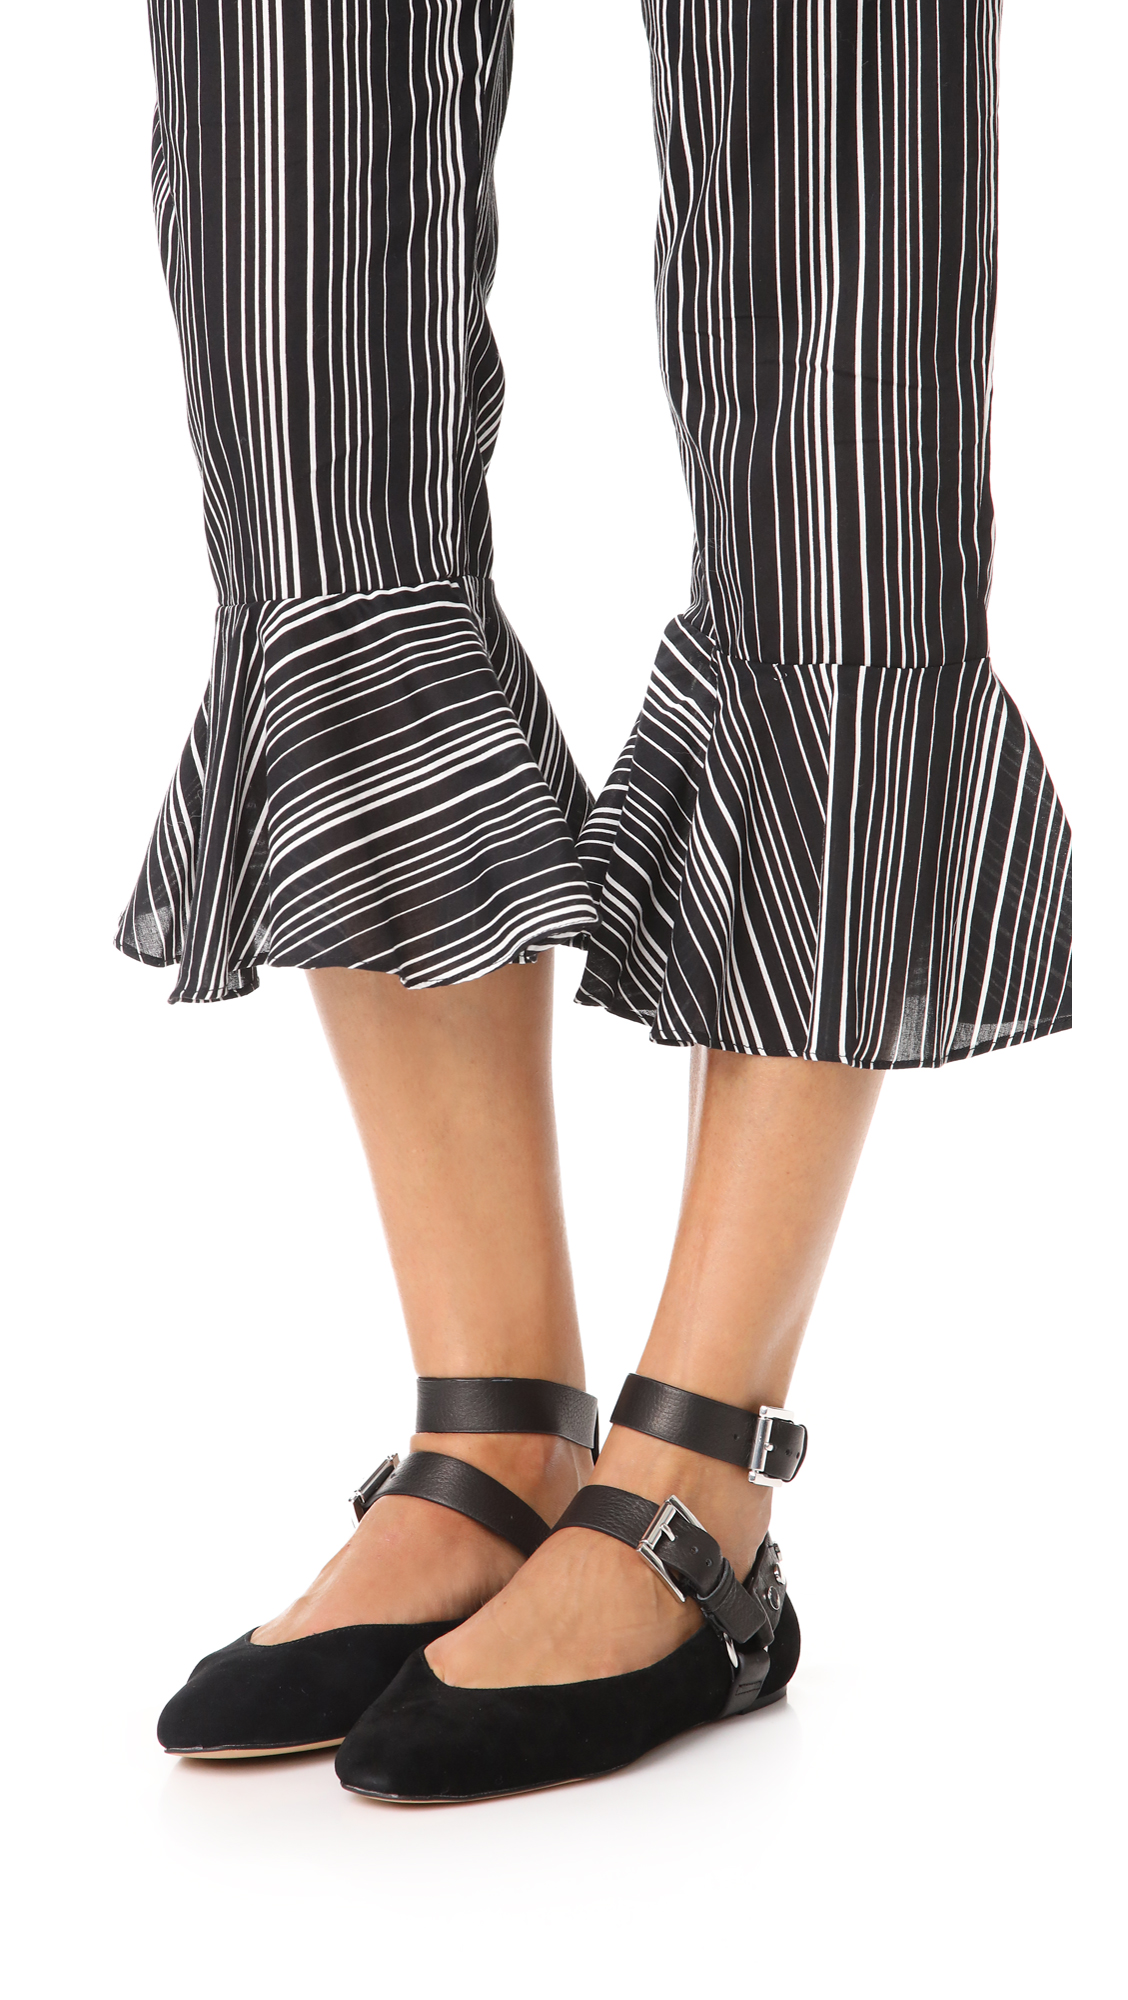 REBECCA MINKOFF Ballet flats pictures cheap price outlet explore cheap original supply clearance lowest price 1uOOg34